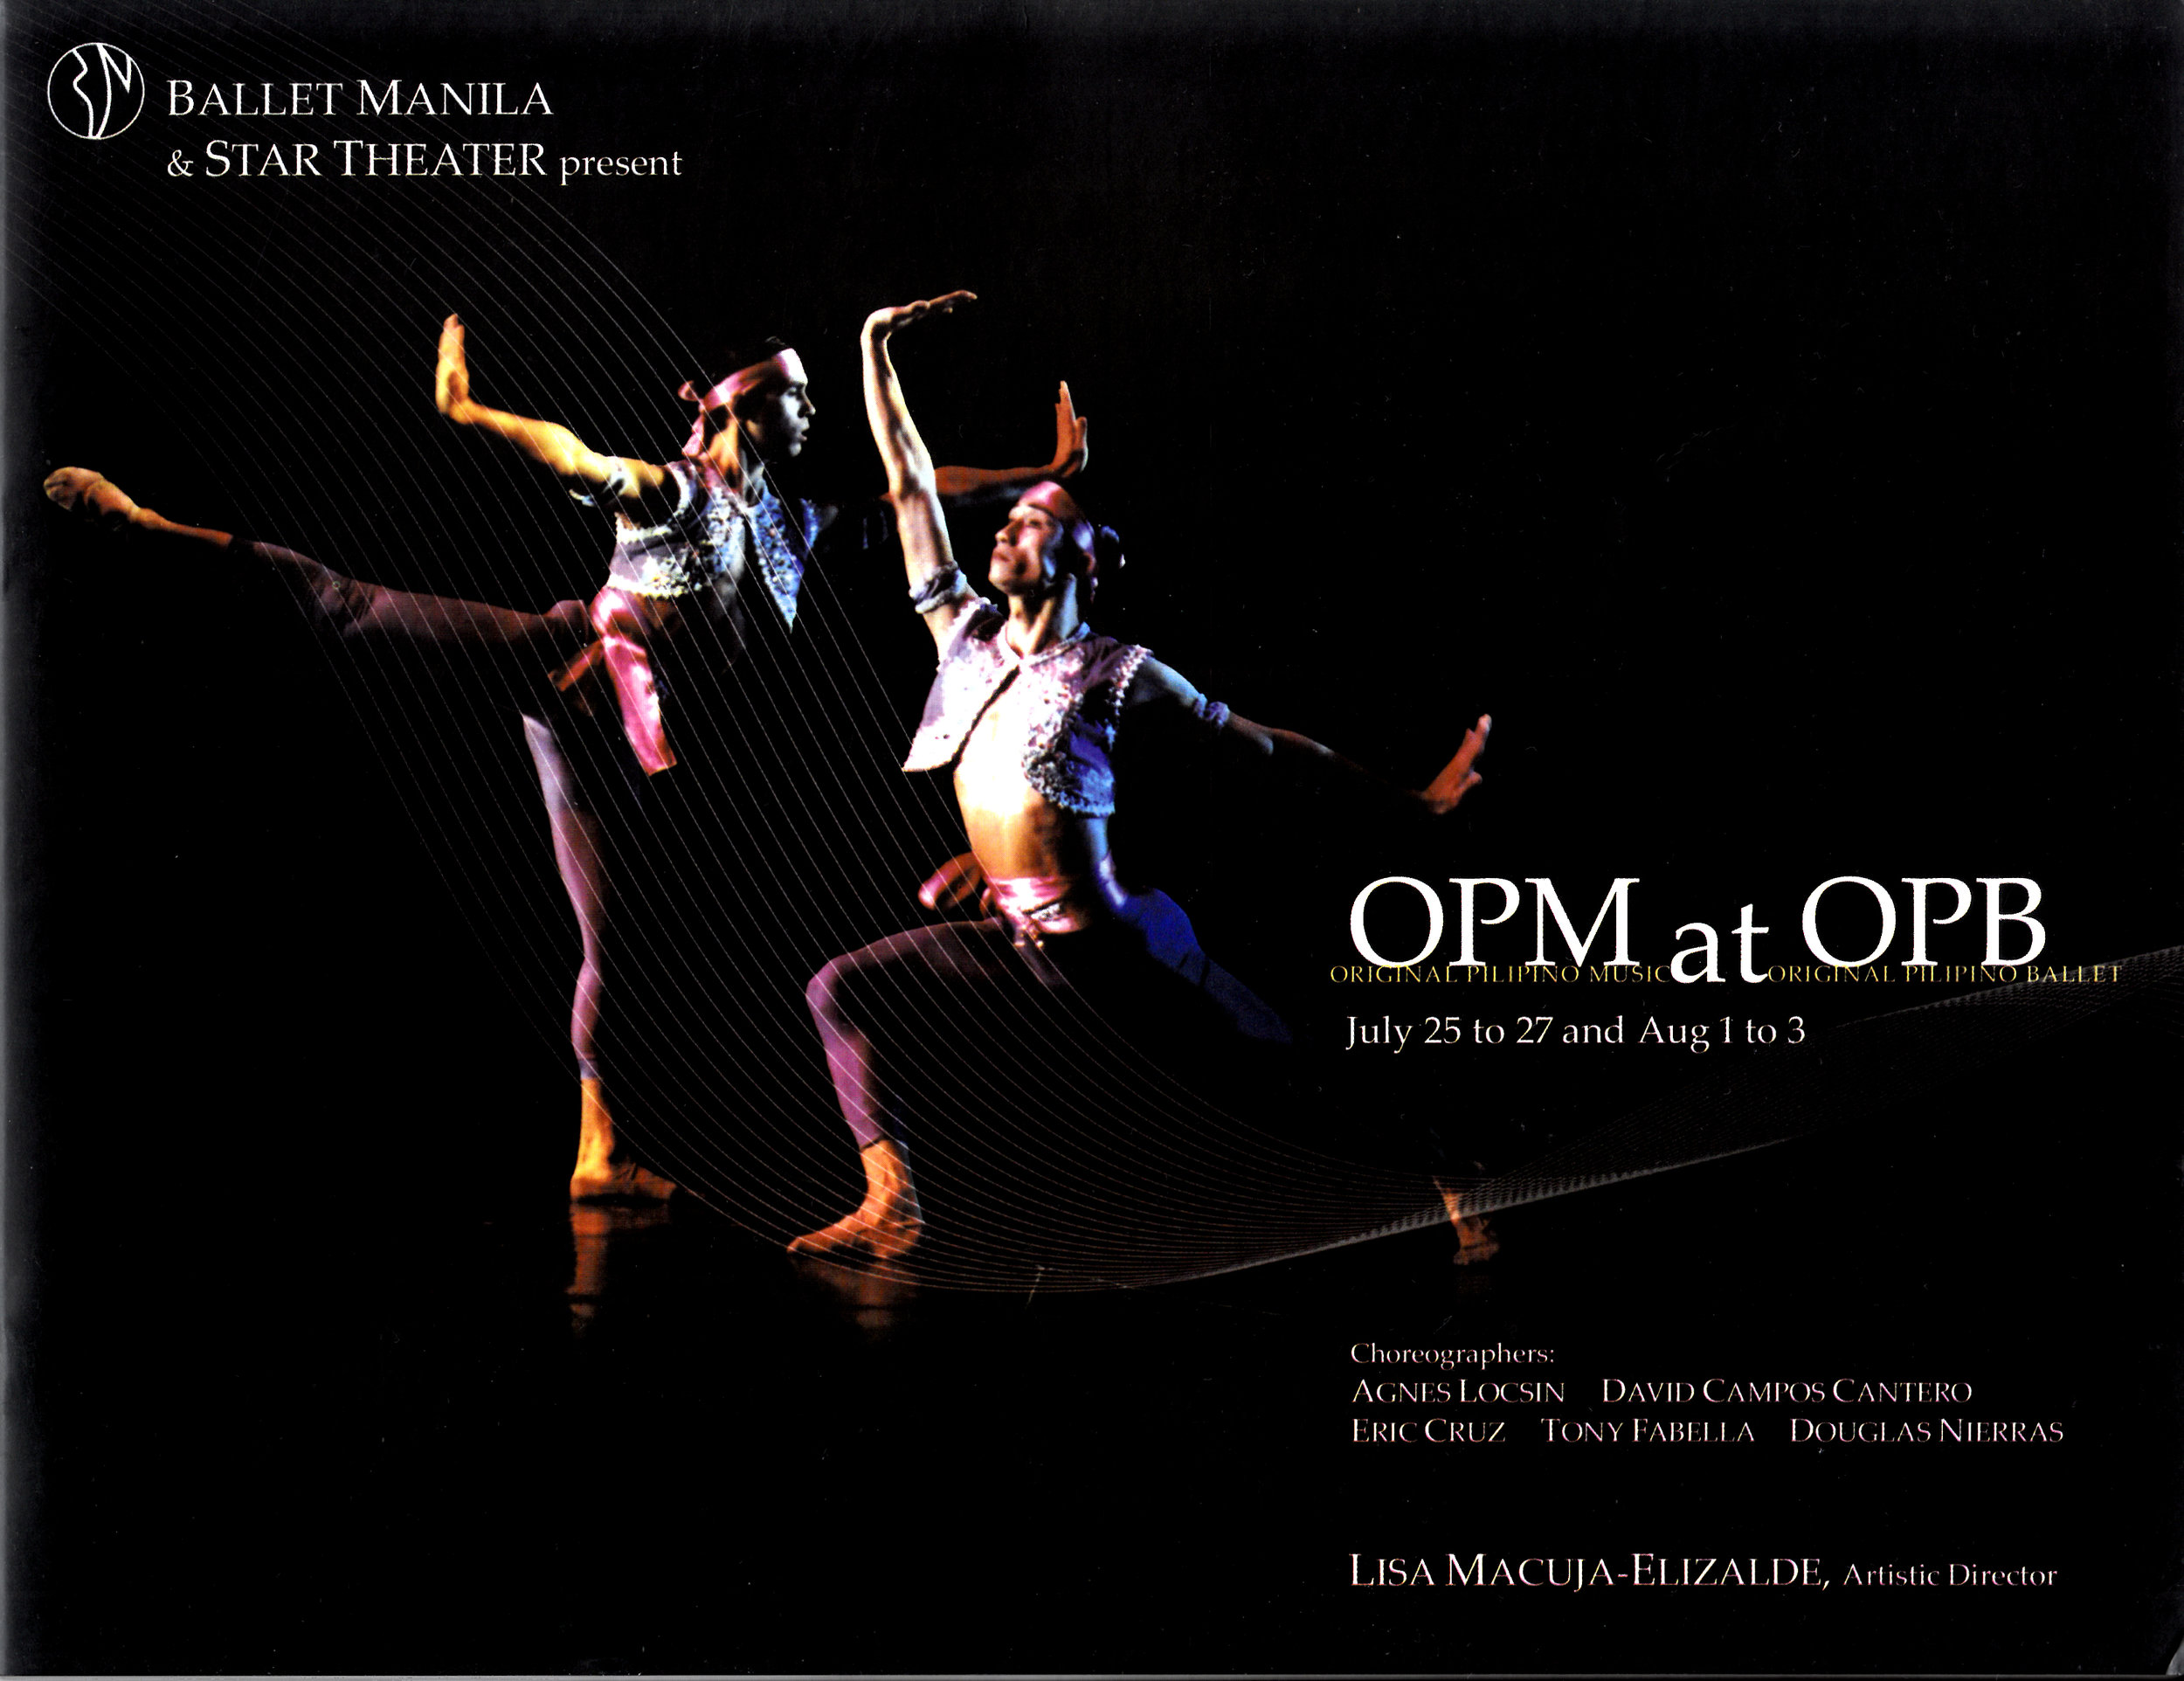 Souvenir program of  OPM at OPB , a celebration of Original Pilipino Music and Original Pilipino Ballet in 2003. From the Ballet Manila Archives collection